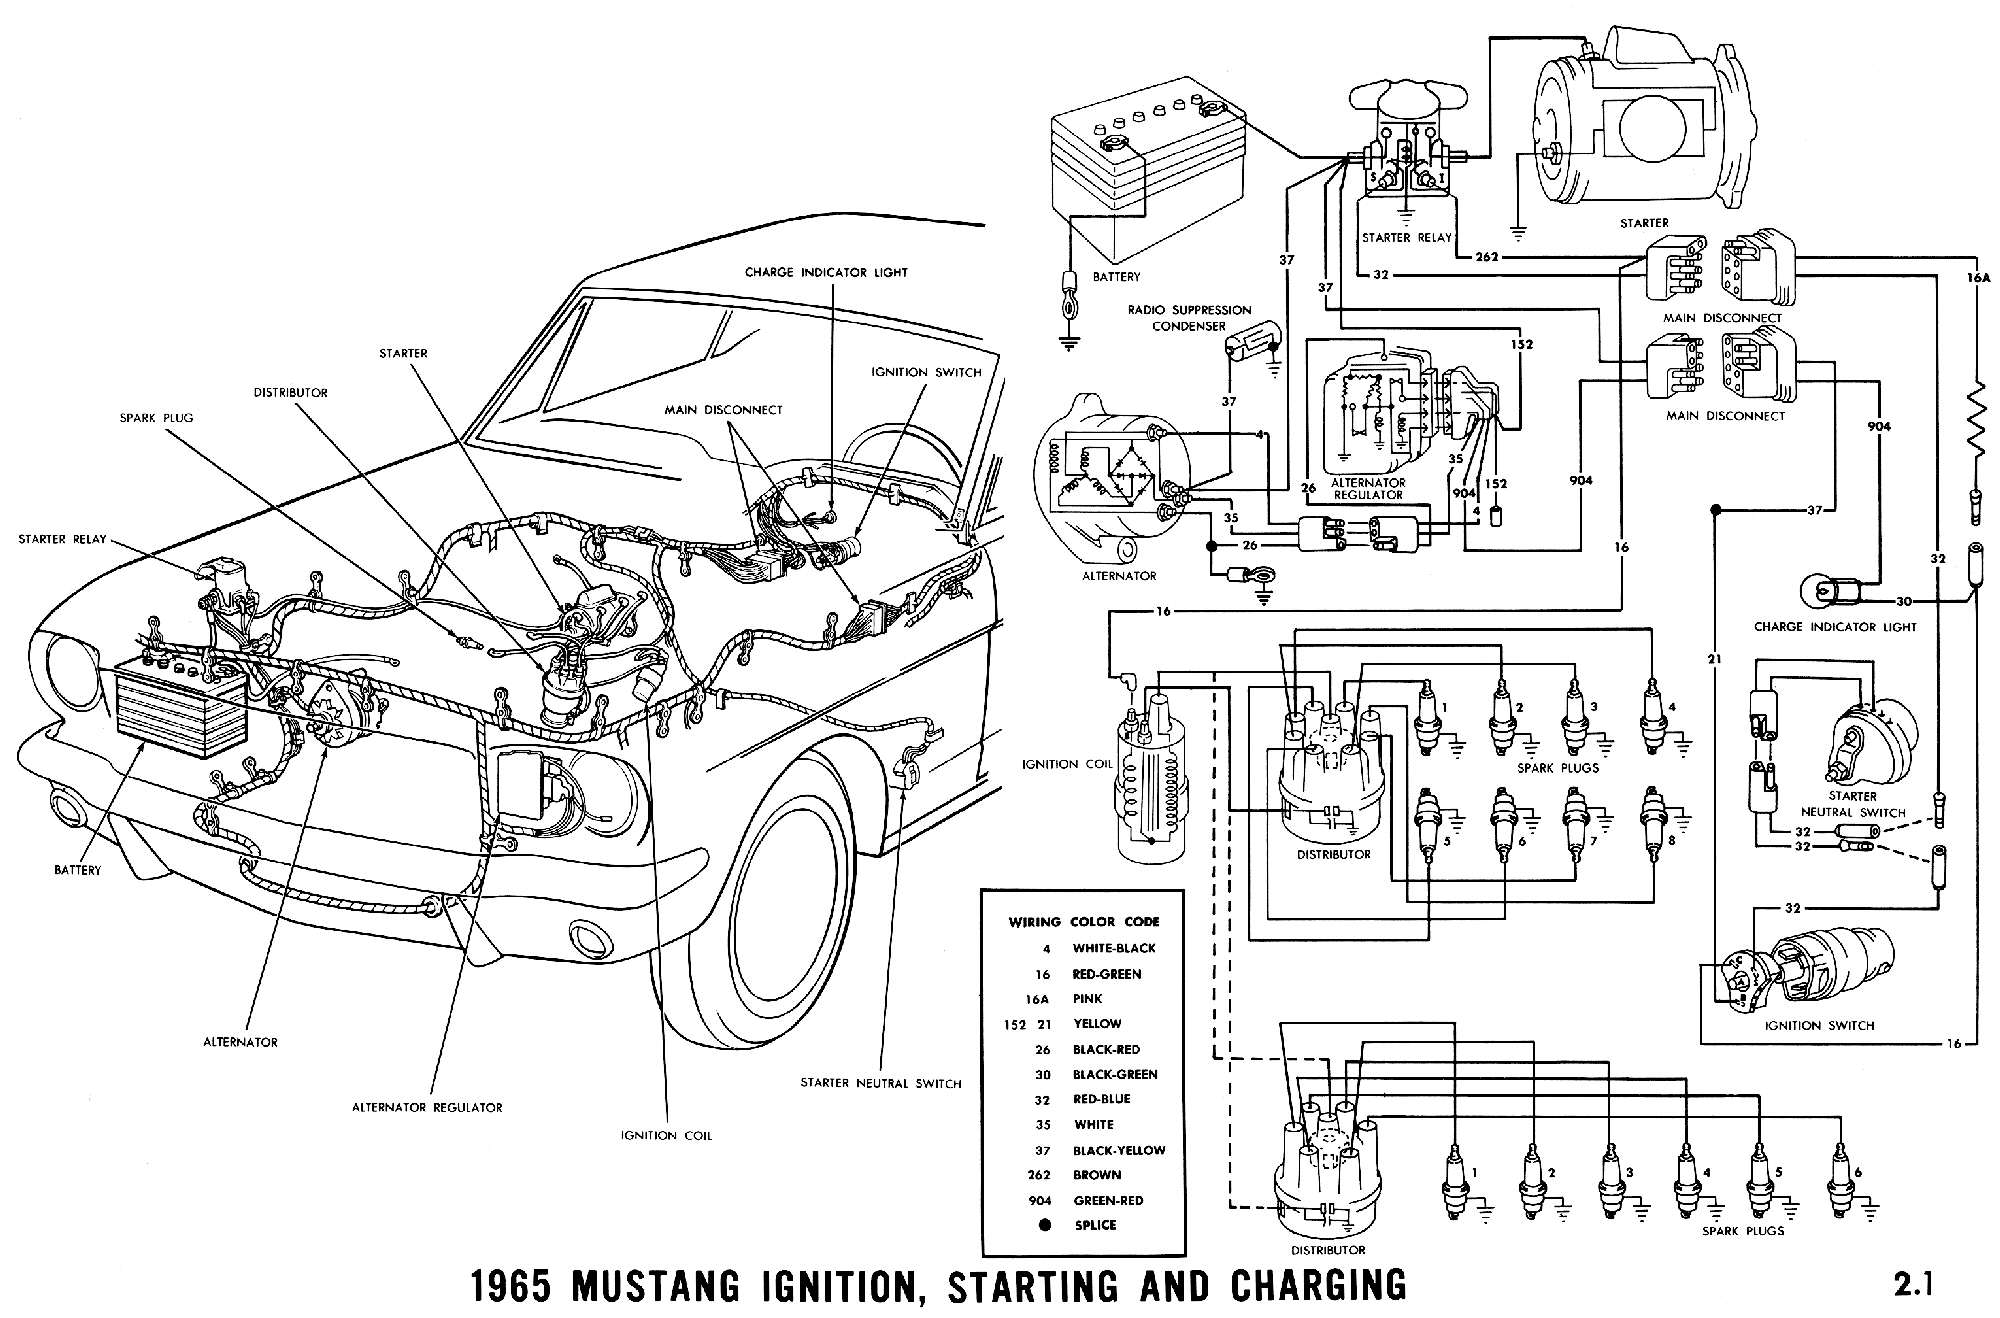 1969 Ford Mustang Fuse Box Location Wiring Diagram Data Chevy Chevelle Engine 1992